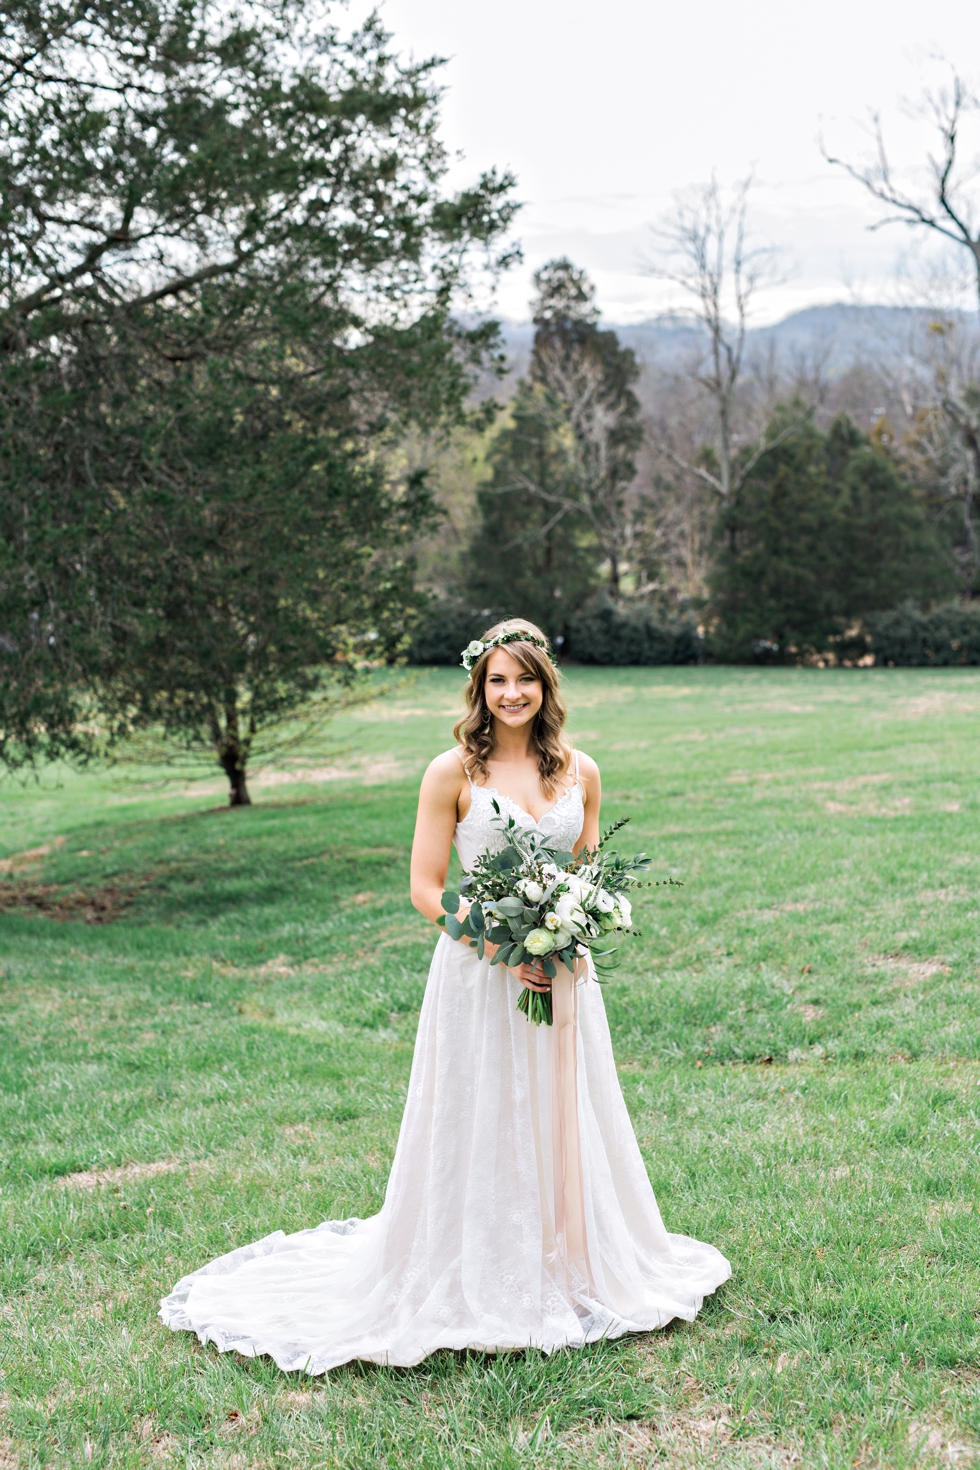 Bridal Session at Cedarwood in Nashville